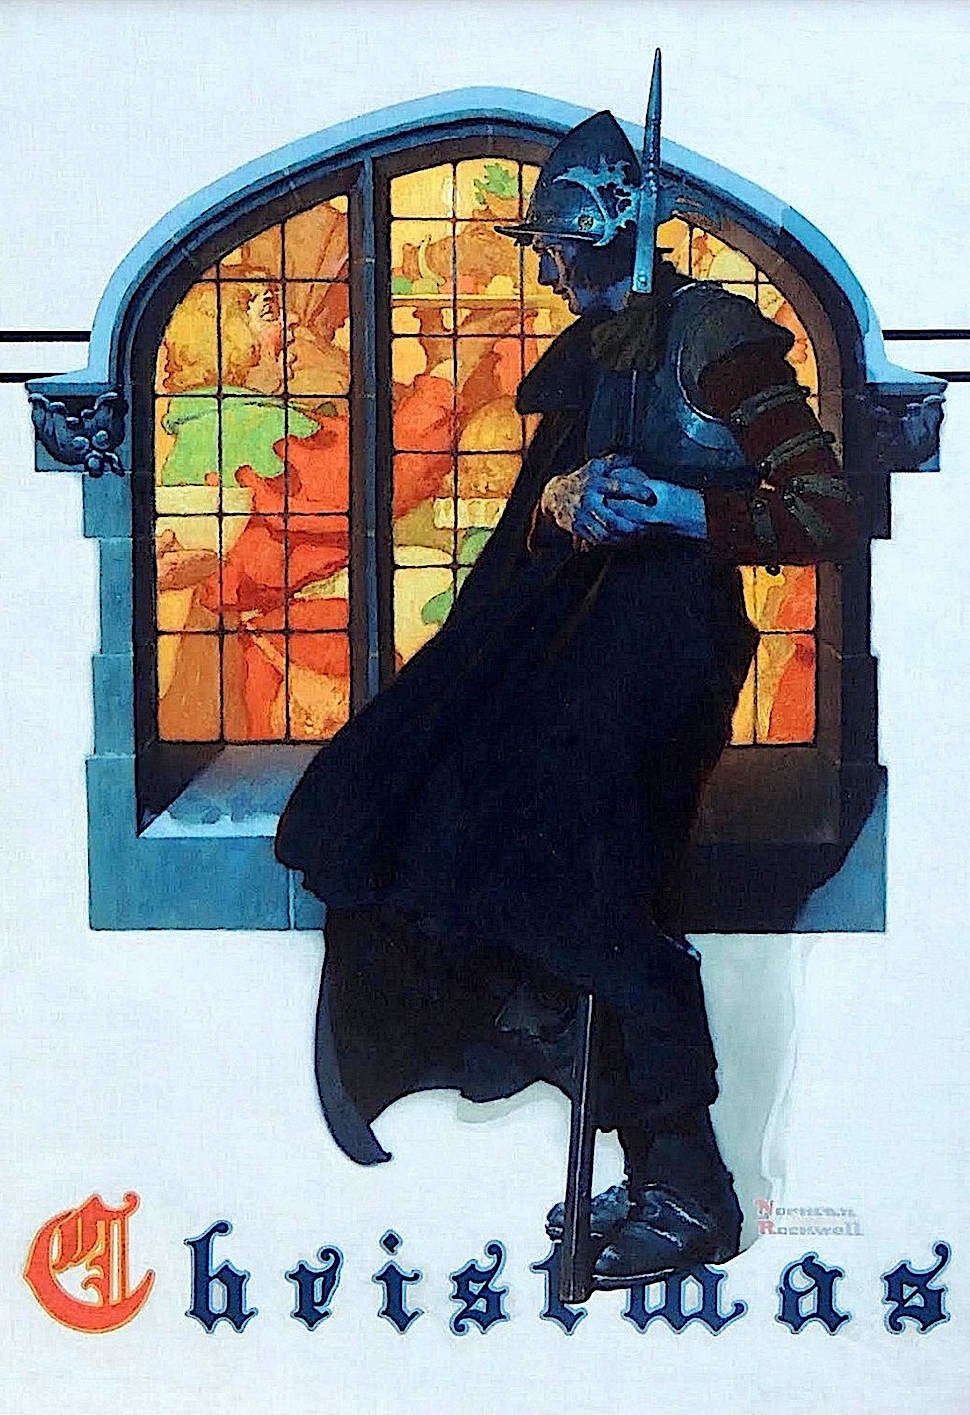 a Norman Rockwell illustration, the Christmas guard on duty